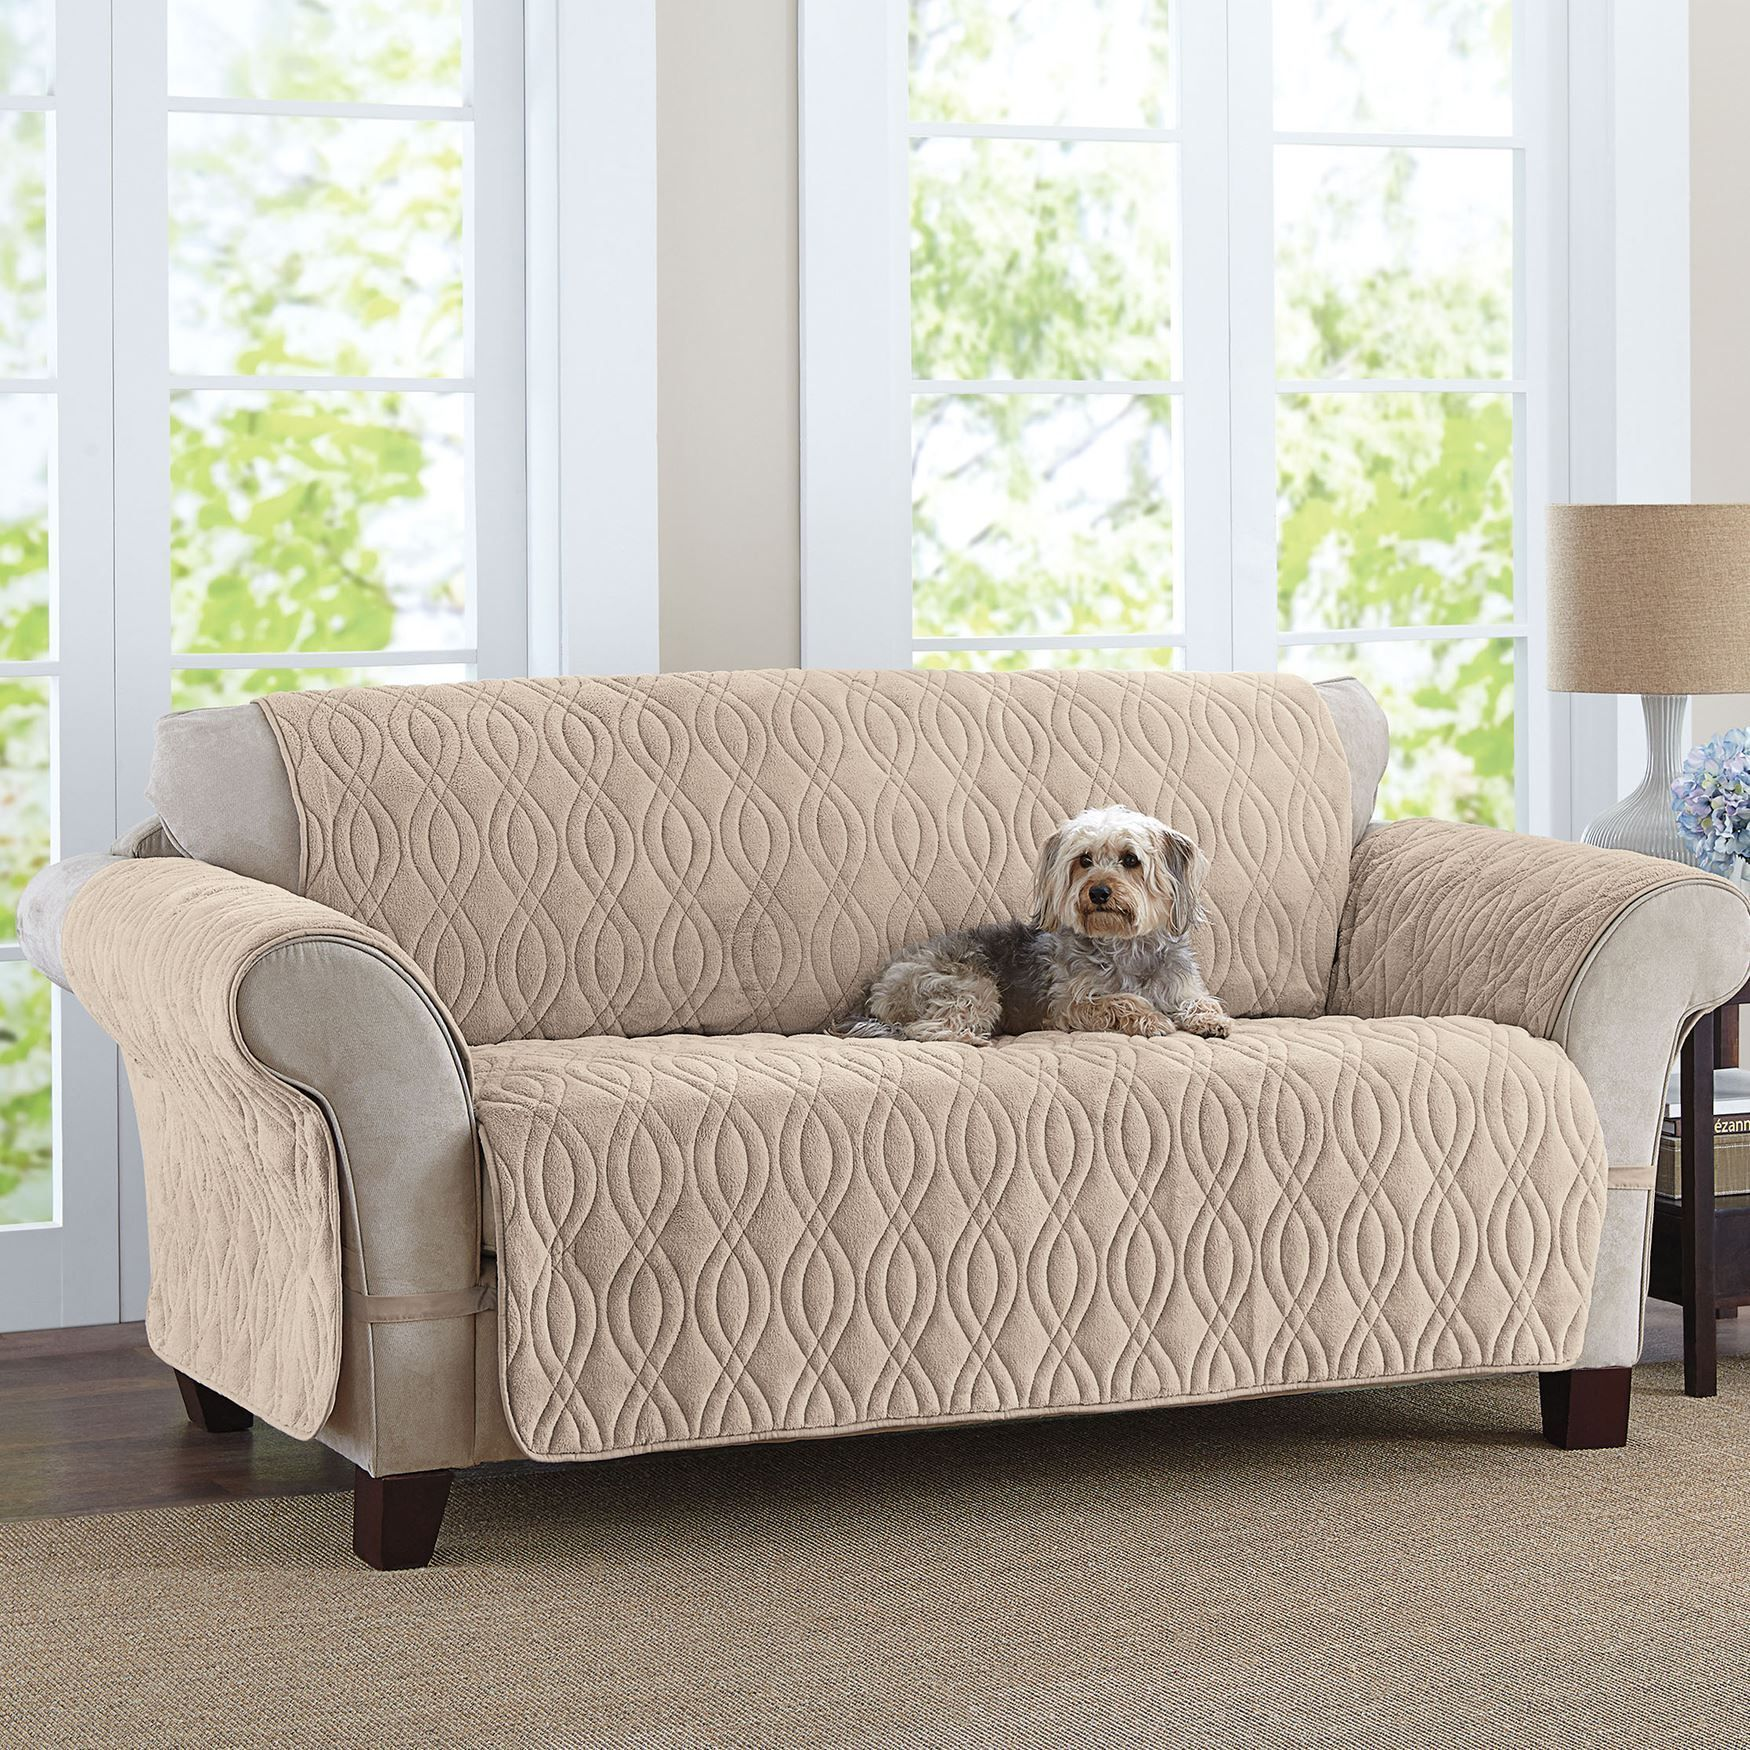 Cover Para Sofa In 2020 With Images Pet Sofa Cover Quilted